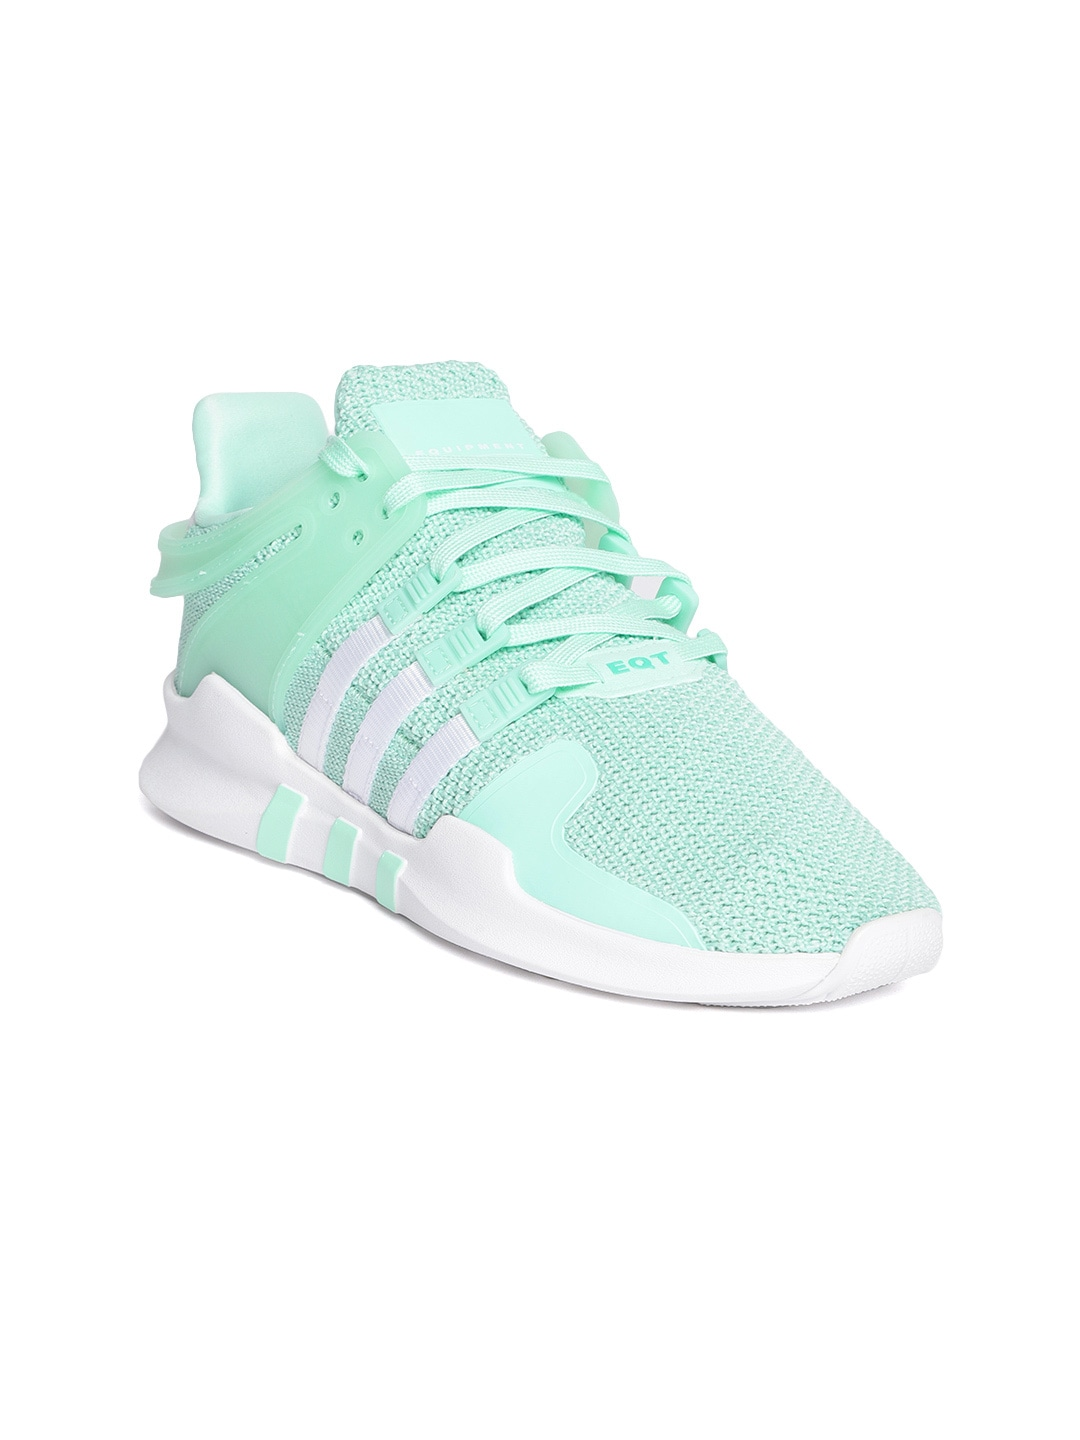 check out 733ec 64270 Shoes Green Adidas Sports - Buy Shoes Green Adidas Sports online in India